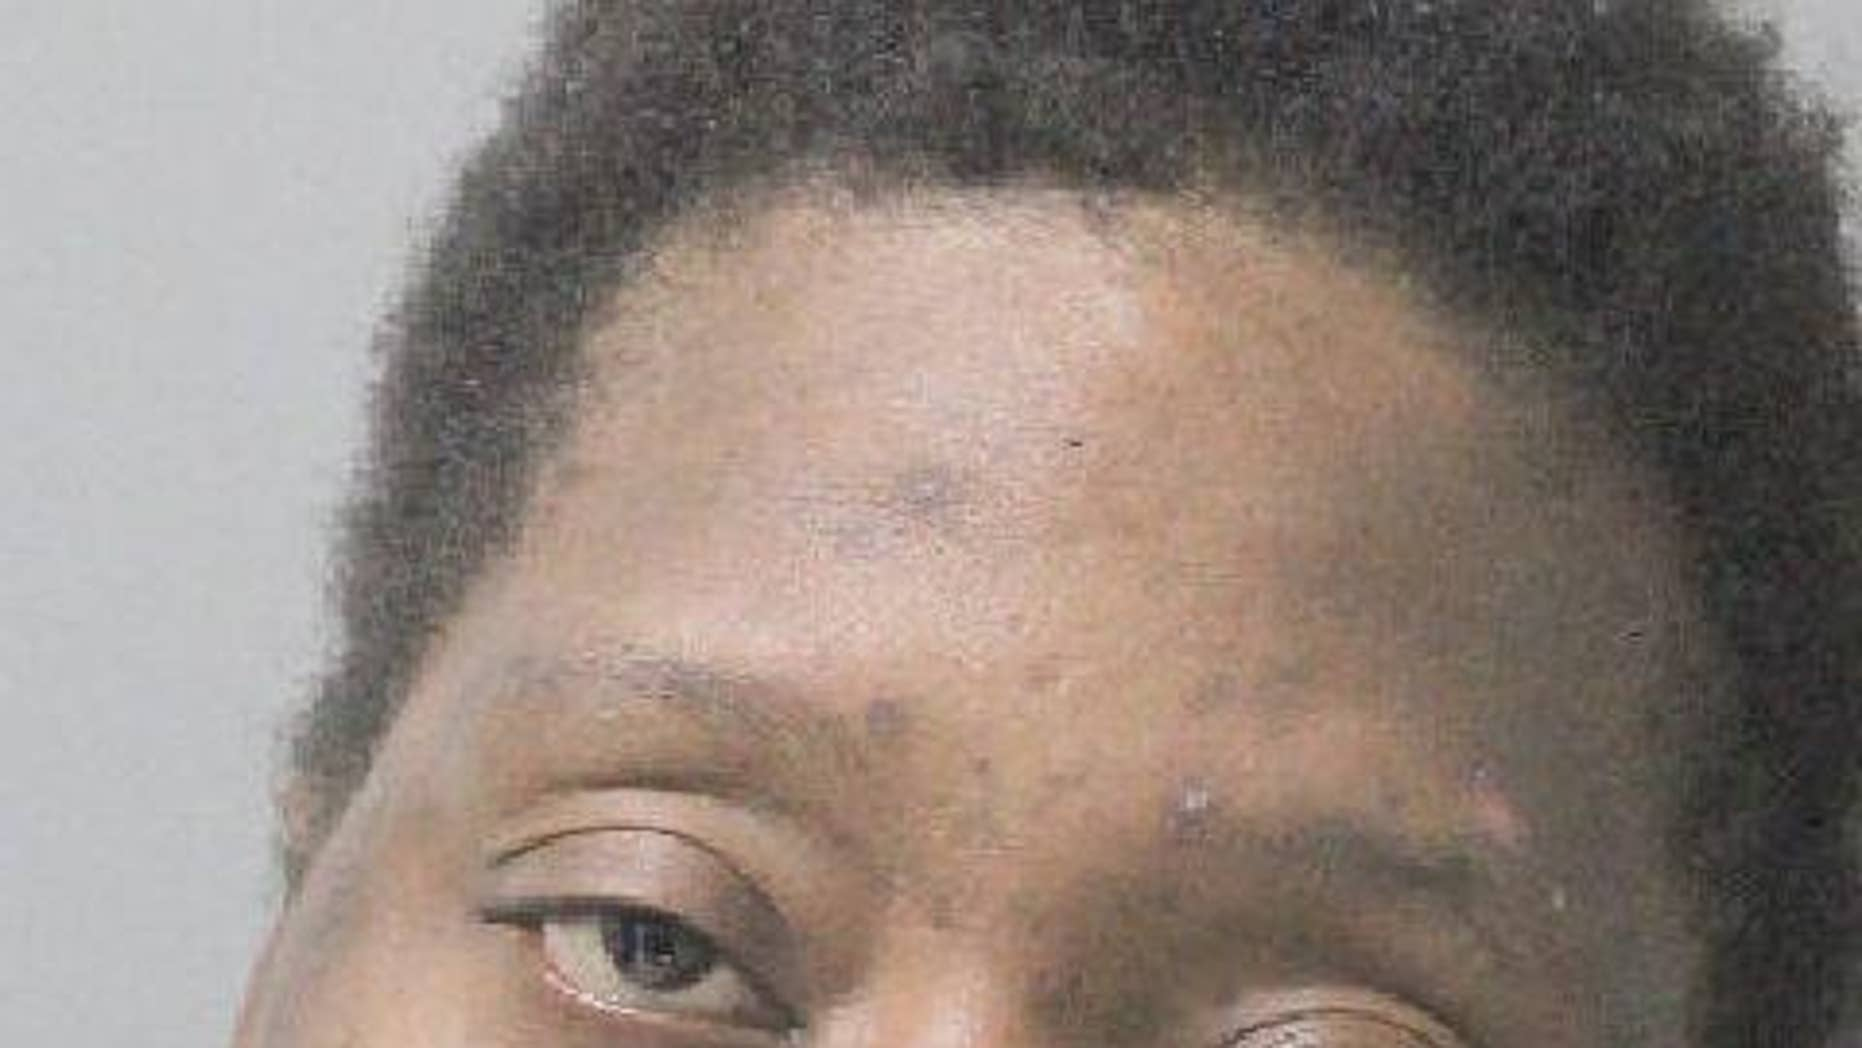 Evelyn Washington was charged with burglary after she was busted in another woman's home taking a bath and eating some Cheetos, police say.